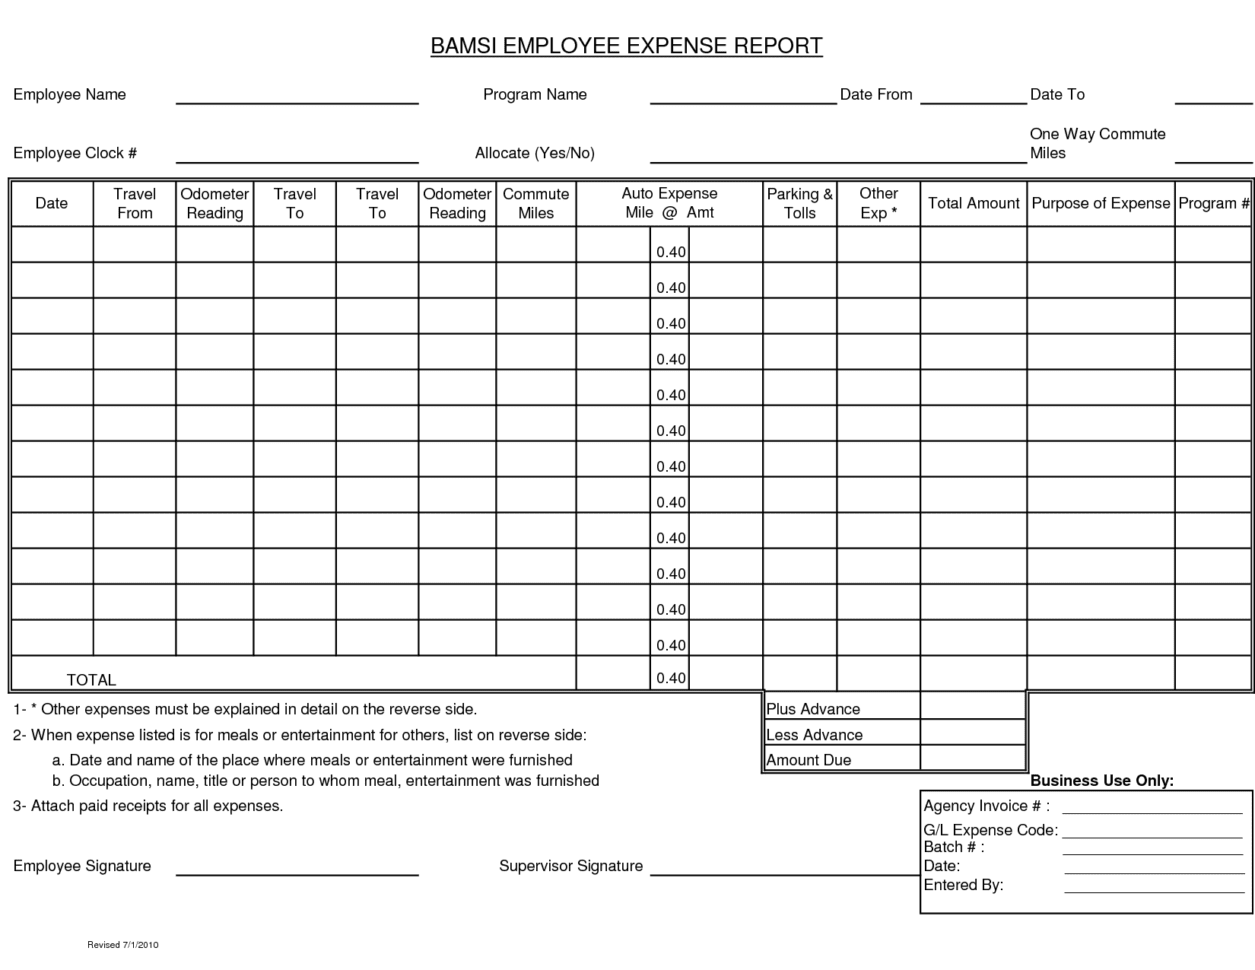 yearly expense report template spreadsheet templates for busines annual expense report template. Black Bedroom Furniture Sets. Home Design Ideas